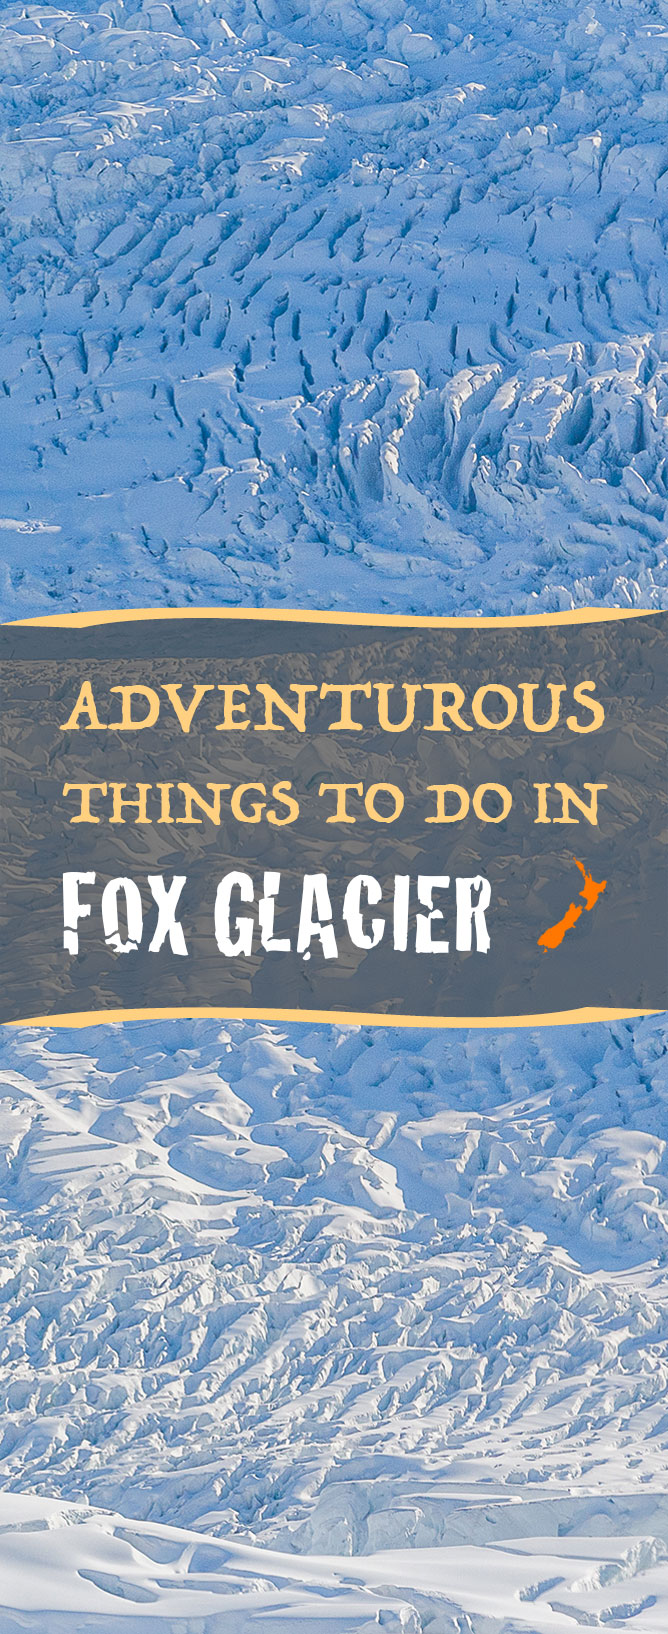 Things To Do In Fox Glacier, NZ